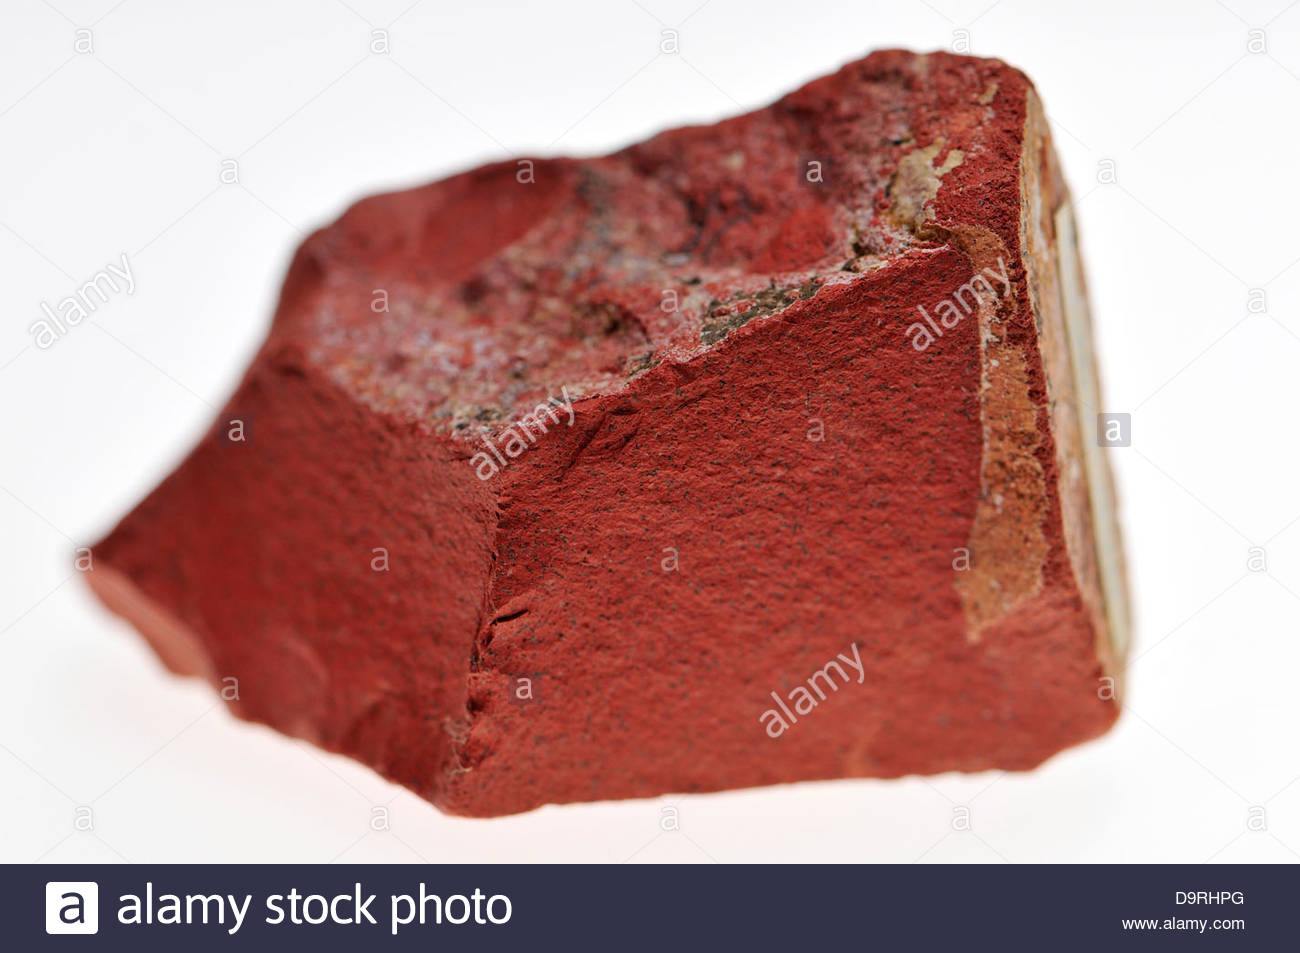 Red Jasper (opaque cryptocrystaline quartz) - Stock Image